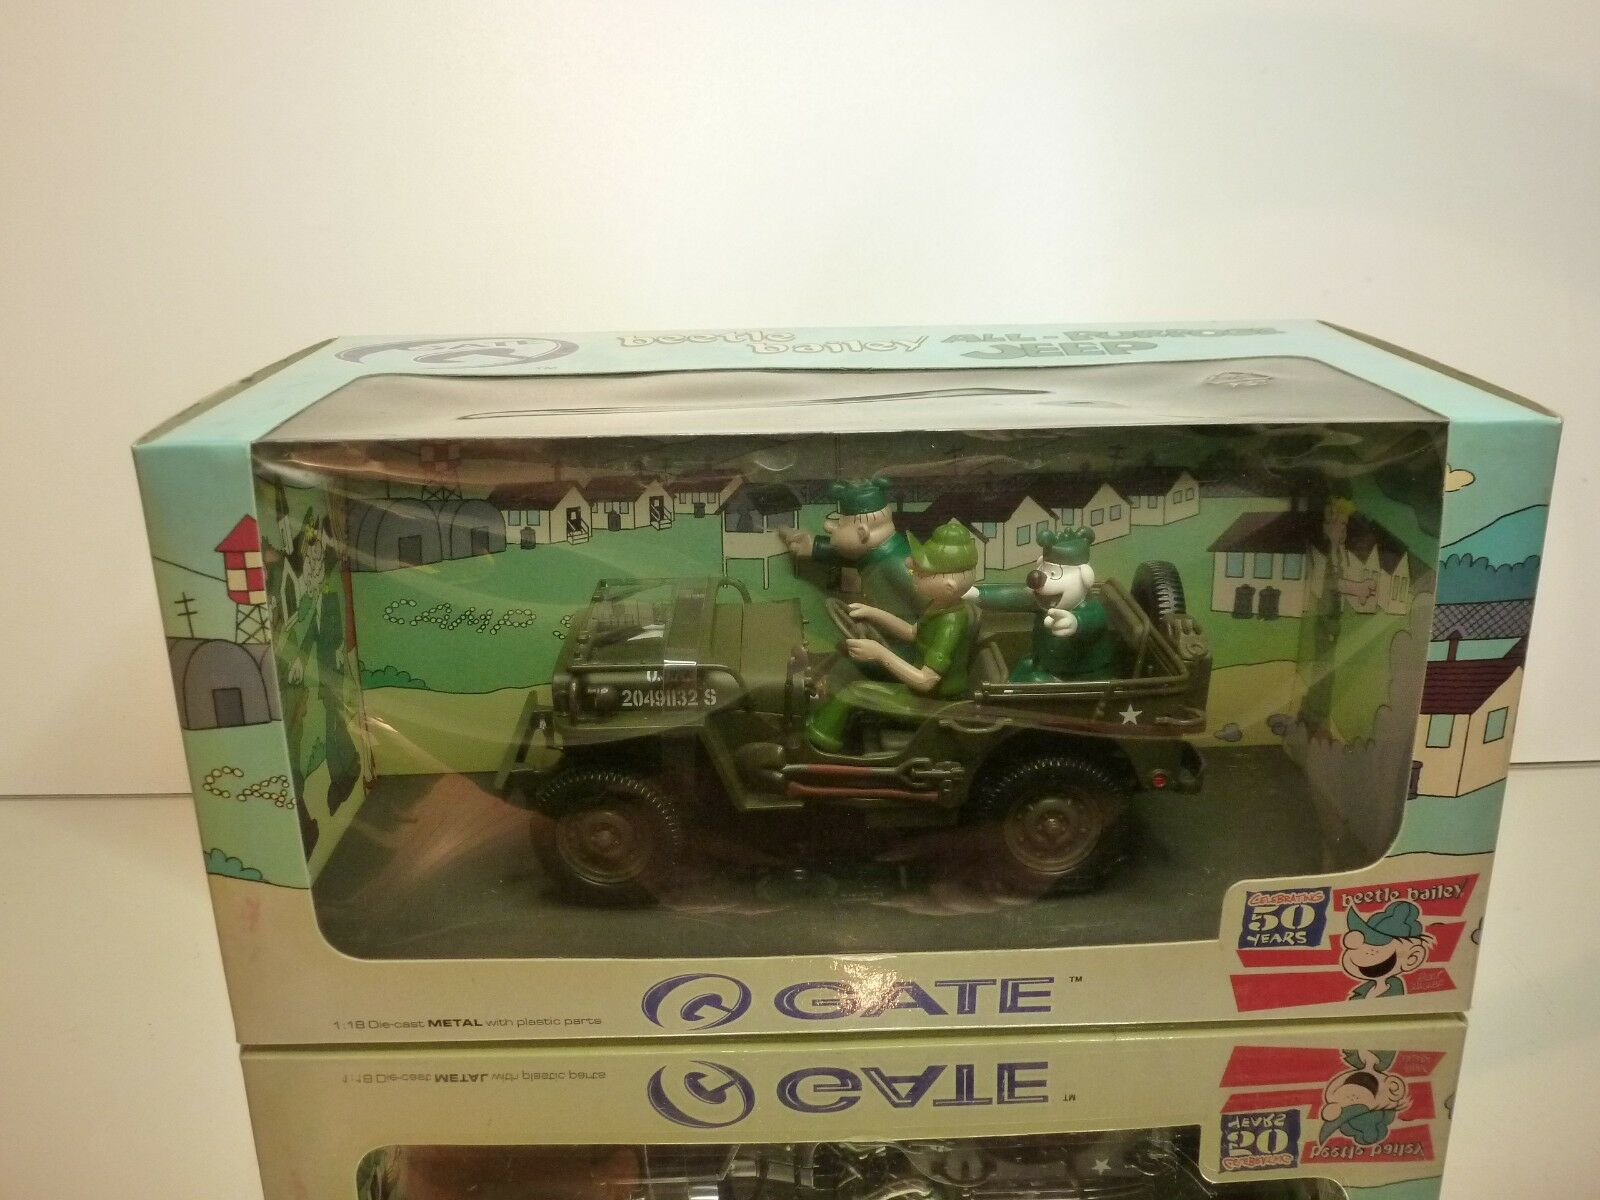 Obtén lo ultimo GATE 01062 BEETLE BAILEY RIDE ON WILLY WILLY WILLY JEEP - ARMY verde 1 18 - EXCELLENT IN BOX  promociones emocionantes